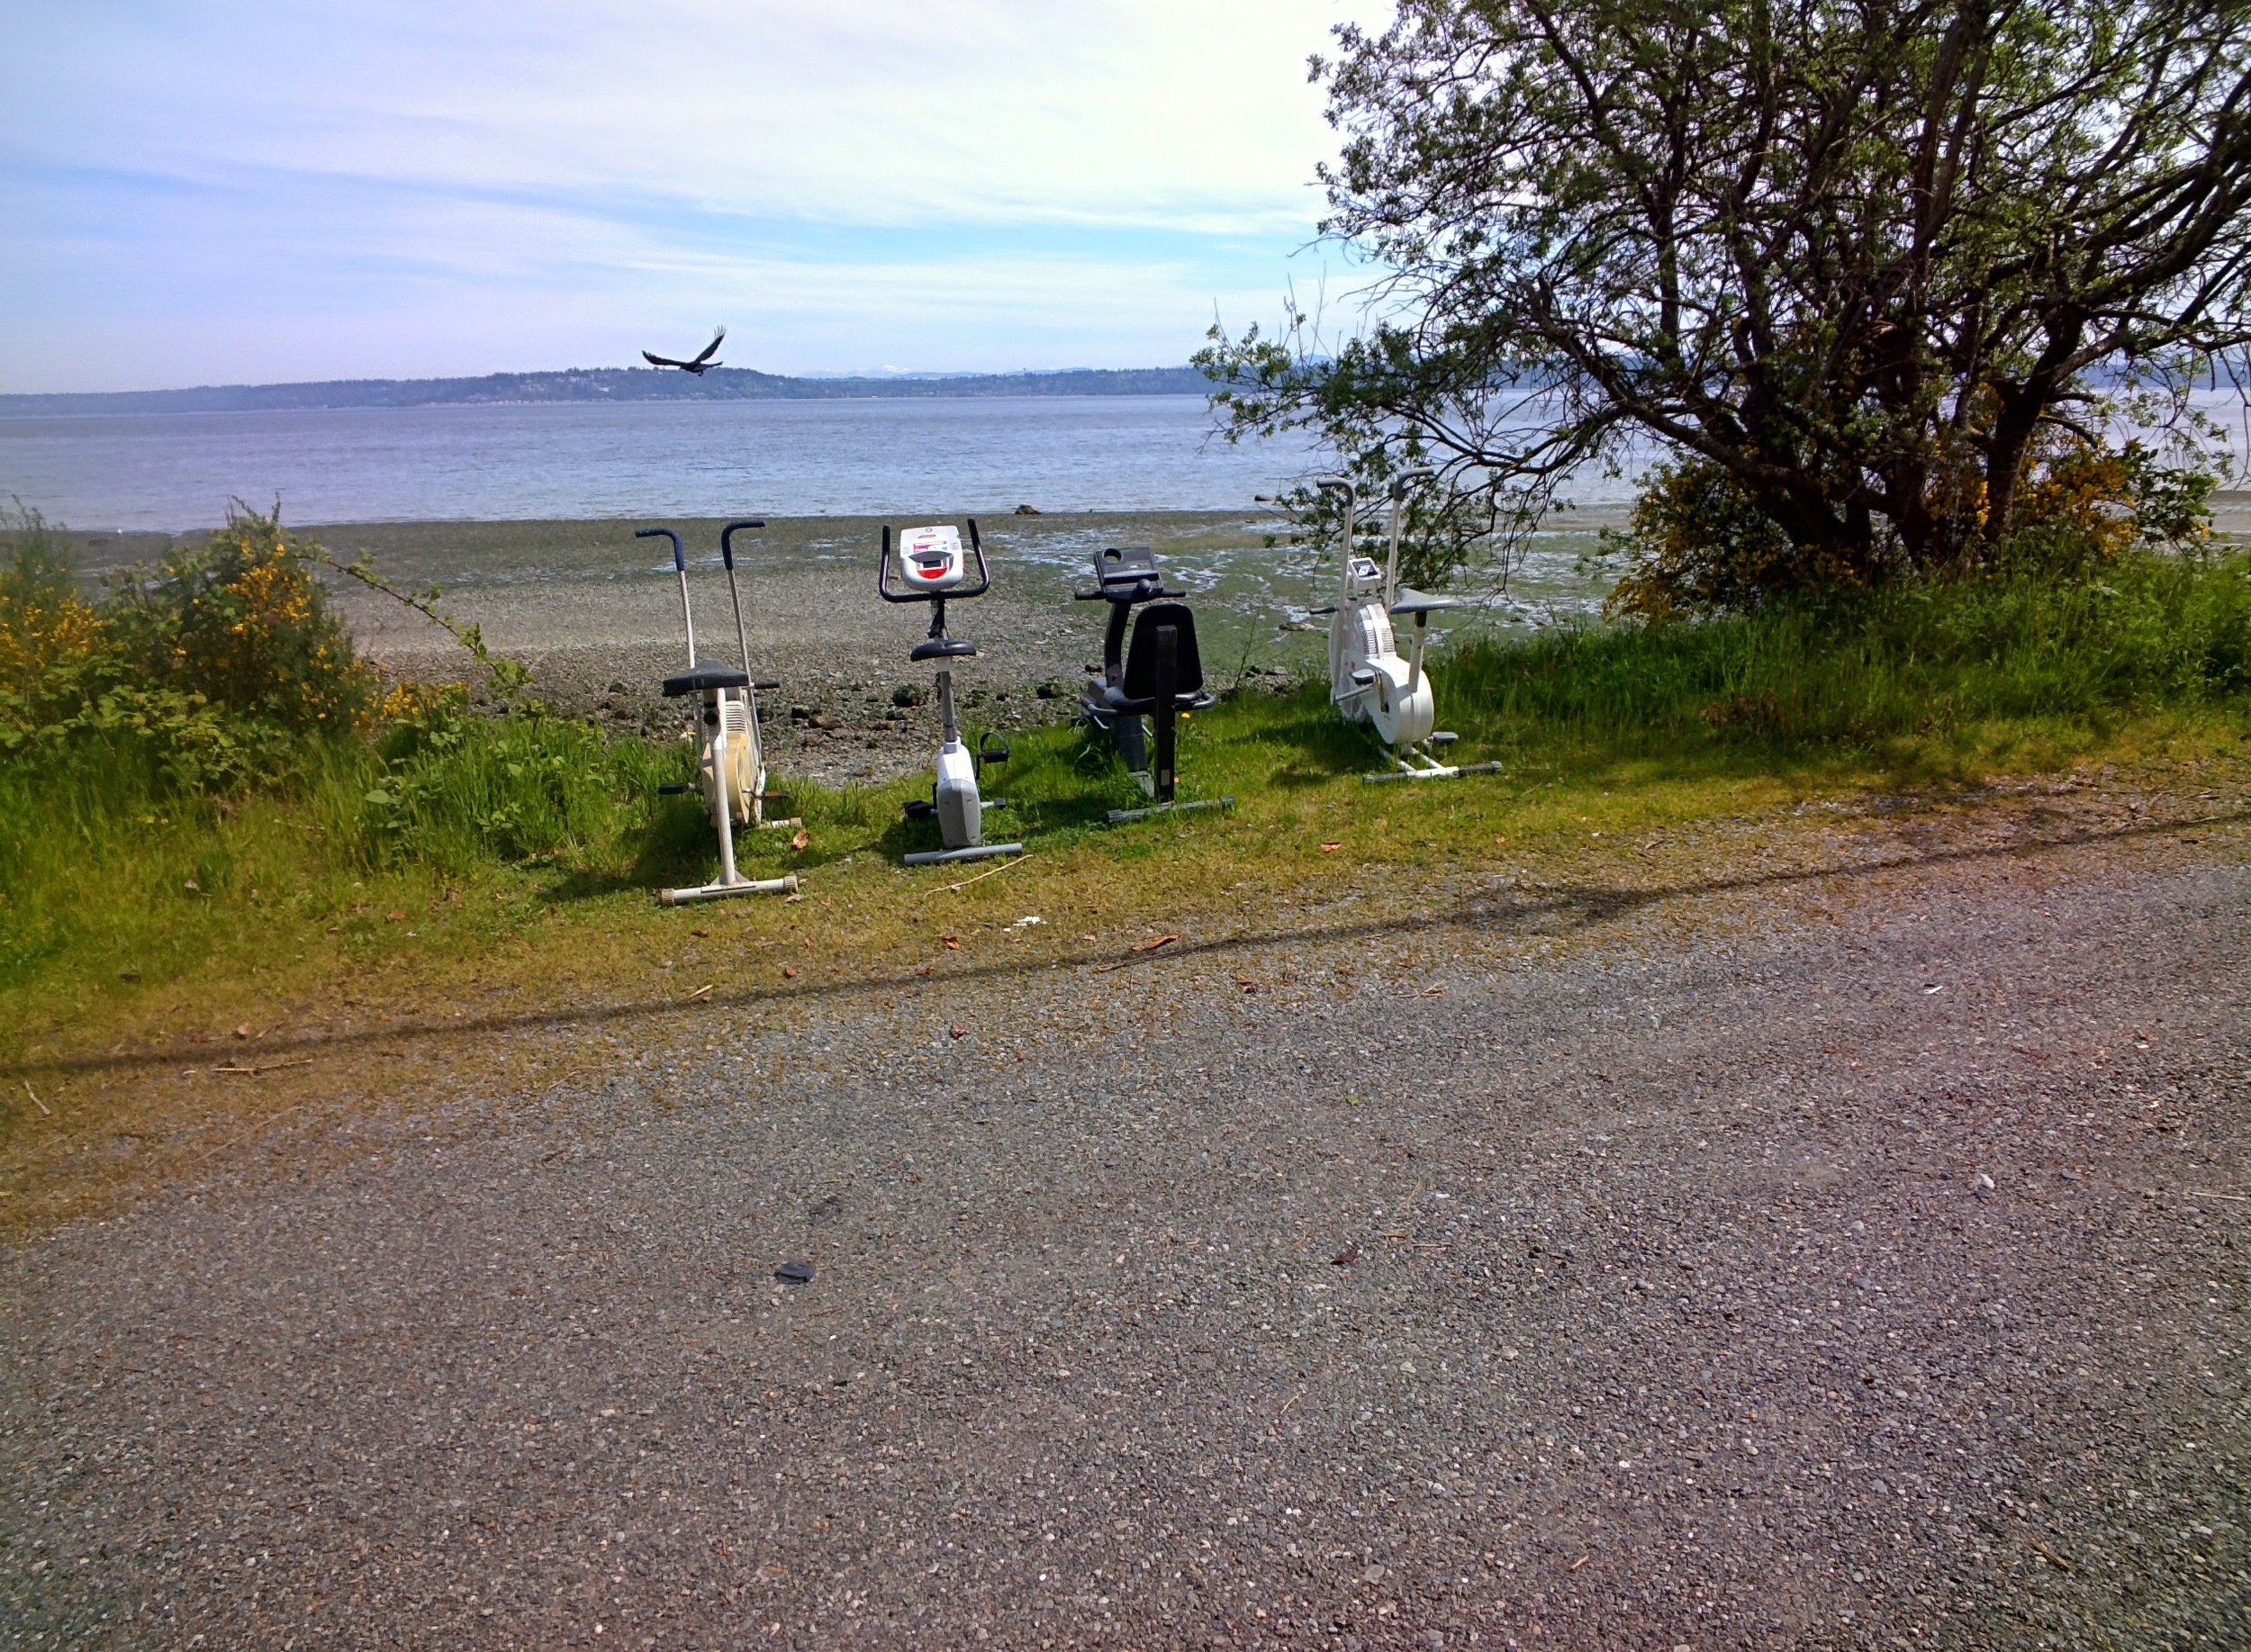 the famous exercise bikes on Vashon a must do EVERY time you ride here.